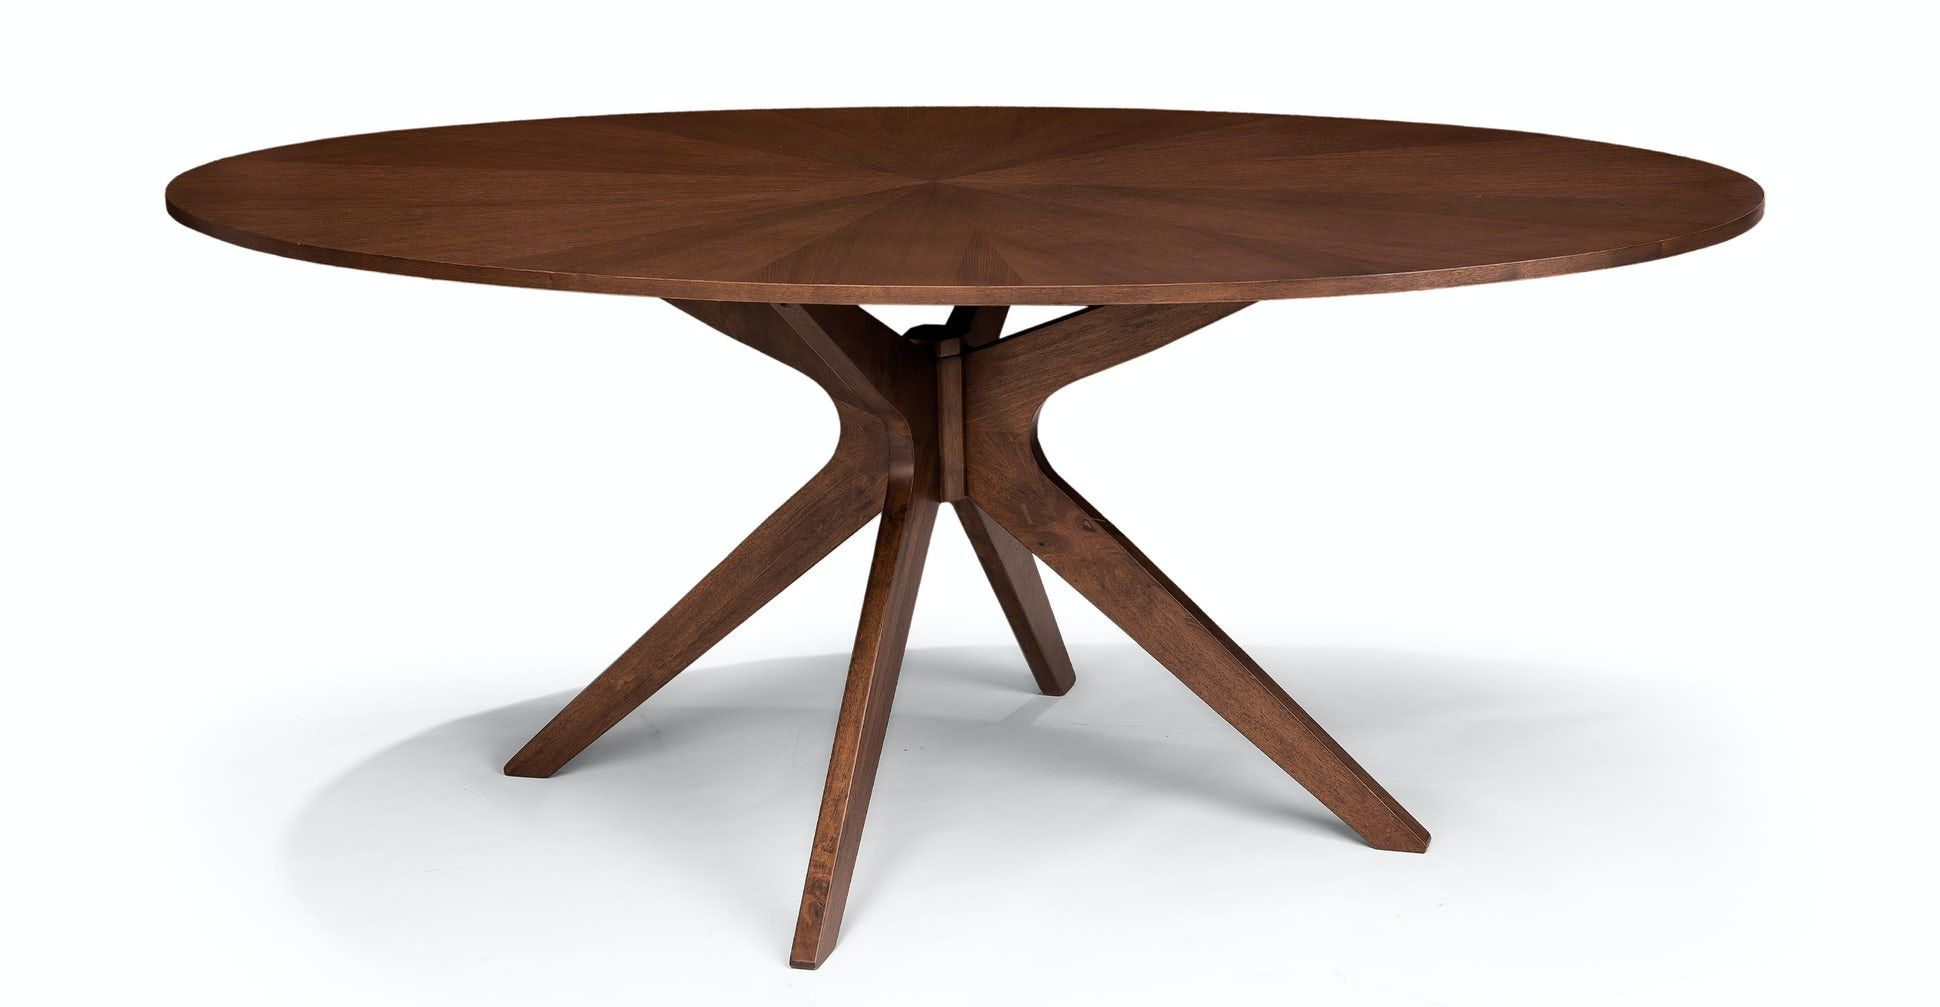 Conan Round Dining Table Oval Table Dining Midcentury Modern Dining Table Oval Kitchen Table [ 1007 x 1940 Pixel ]